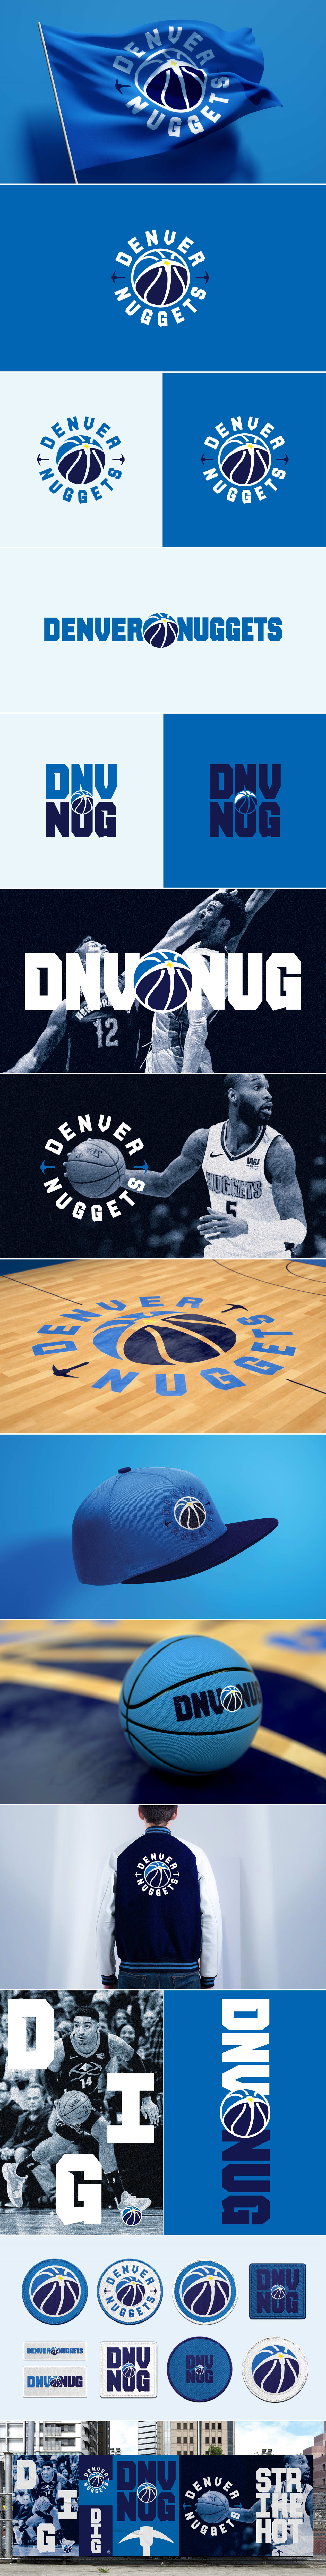 PROPOSED DENVER NUGGETS IDENTITY